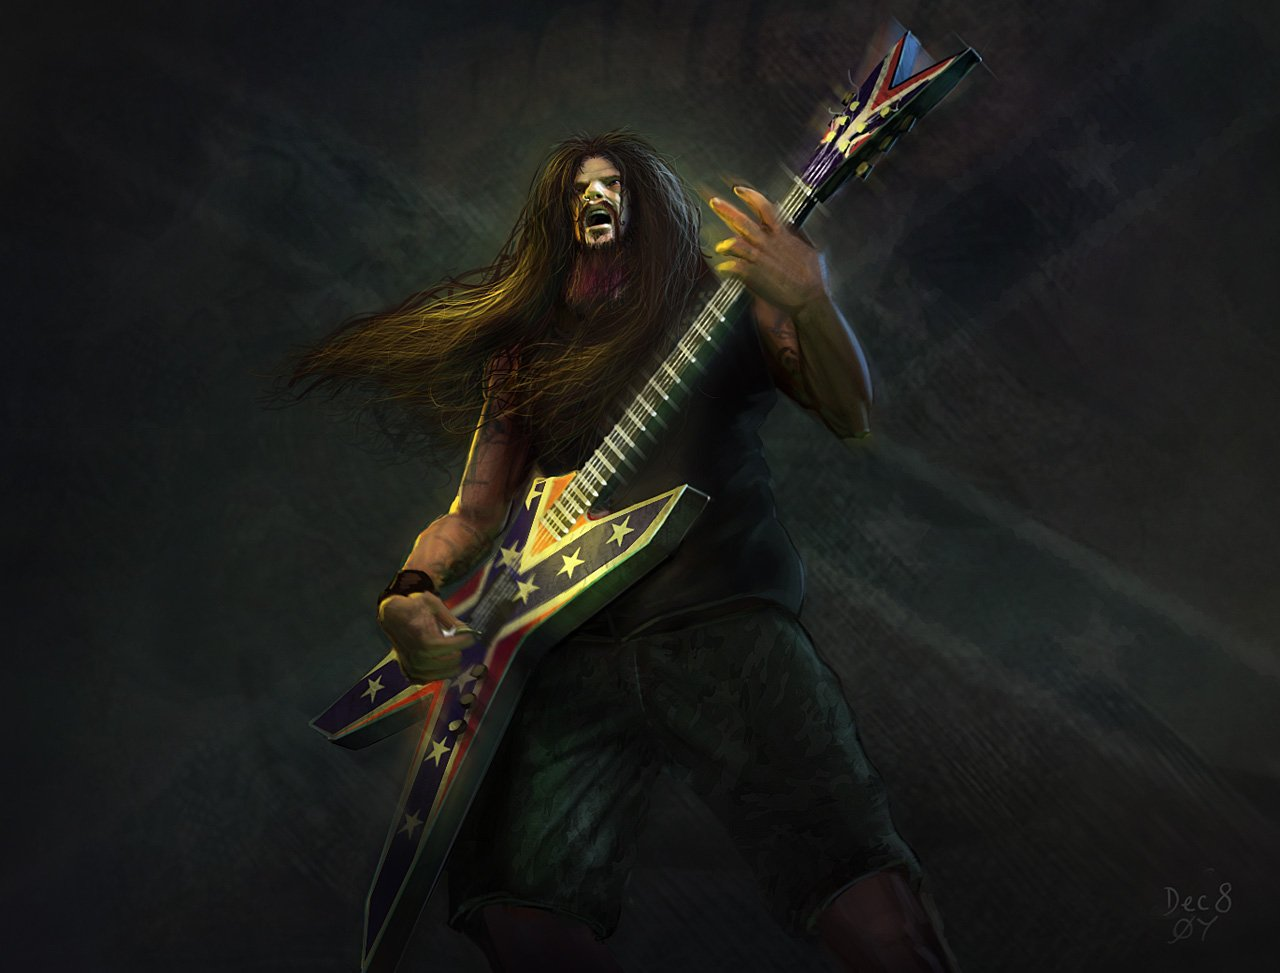 Music Metal 23024 Hd Wallpapers in Music   Imagescicom 1280x973